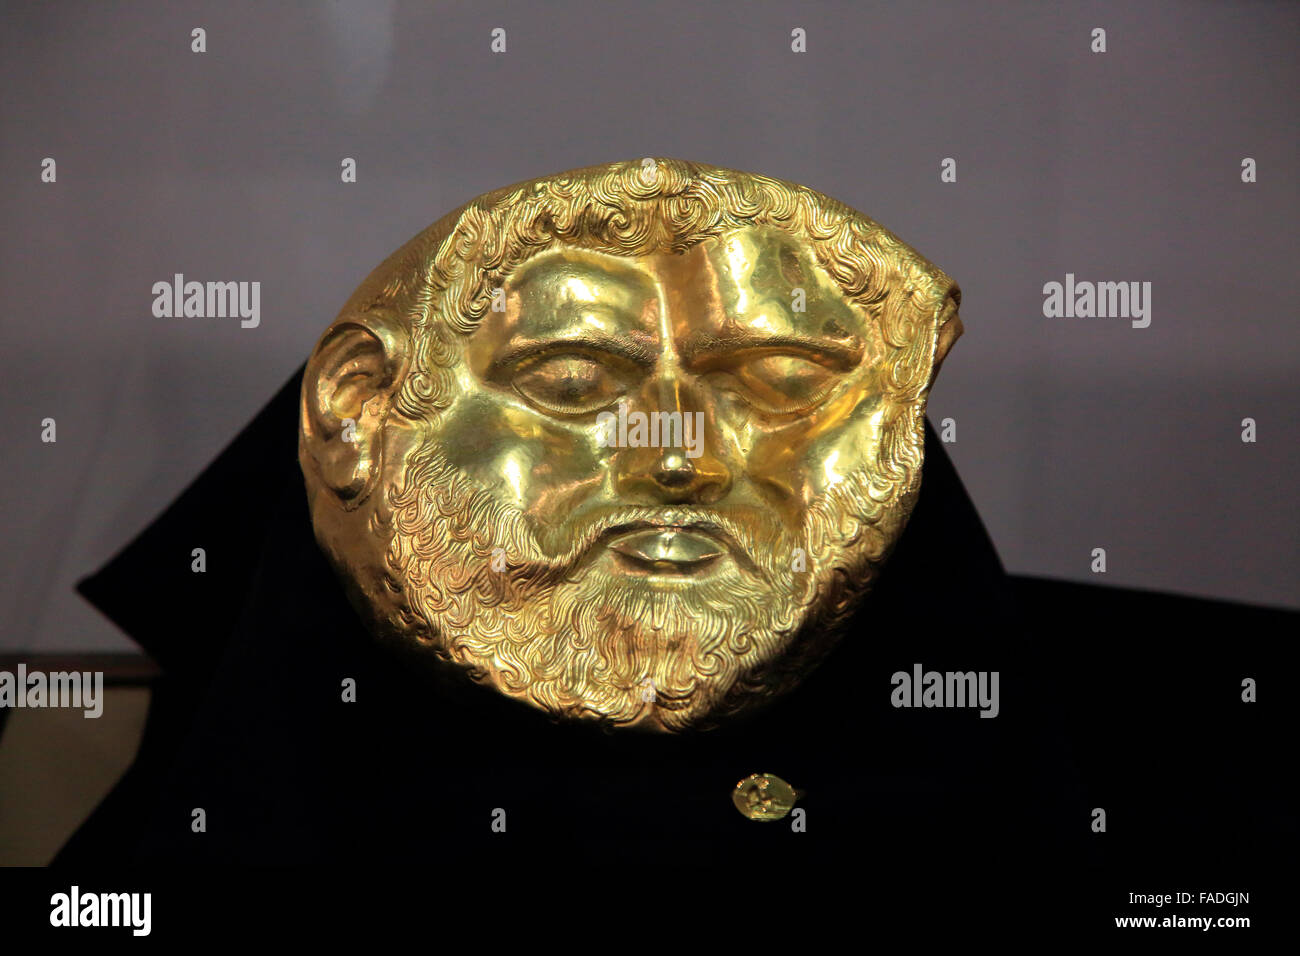 Gold mask of a Thracian king on display in Kazanlak museum, Bulgaria - Stock Image